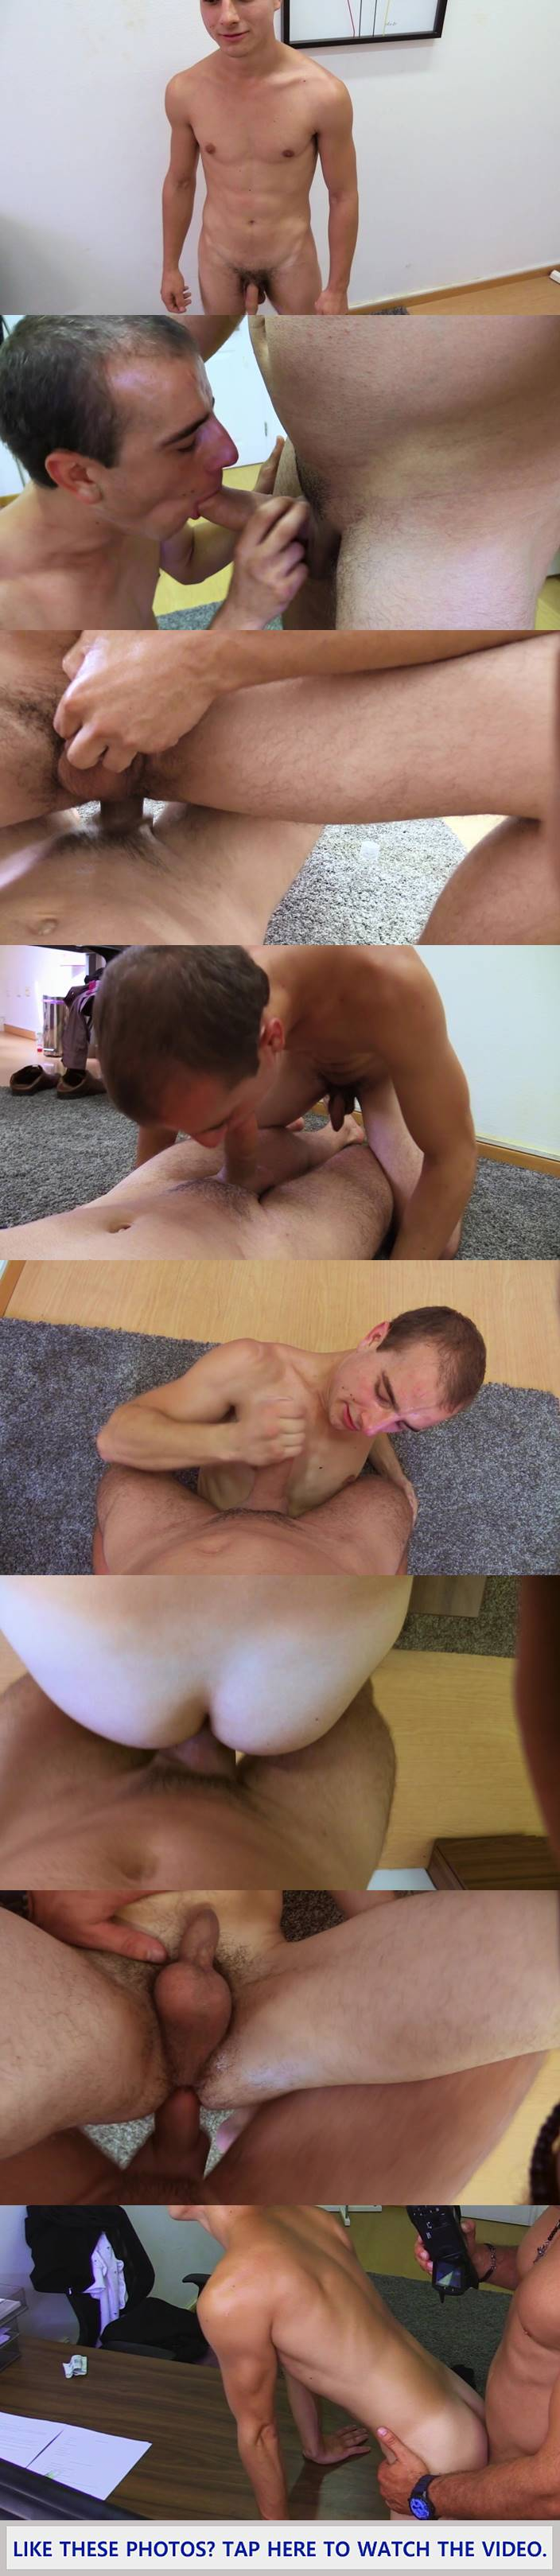 Dirty Scout - Scene 205: Undressed and Fucked